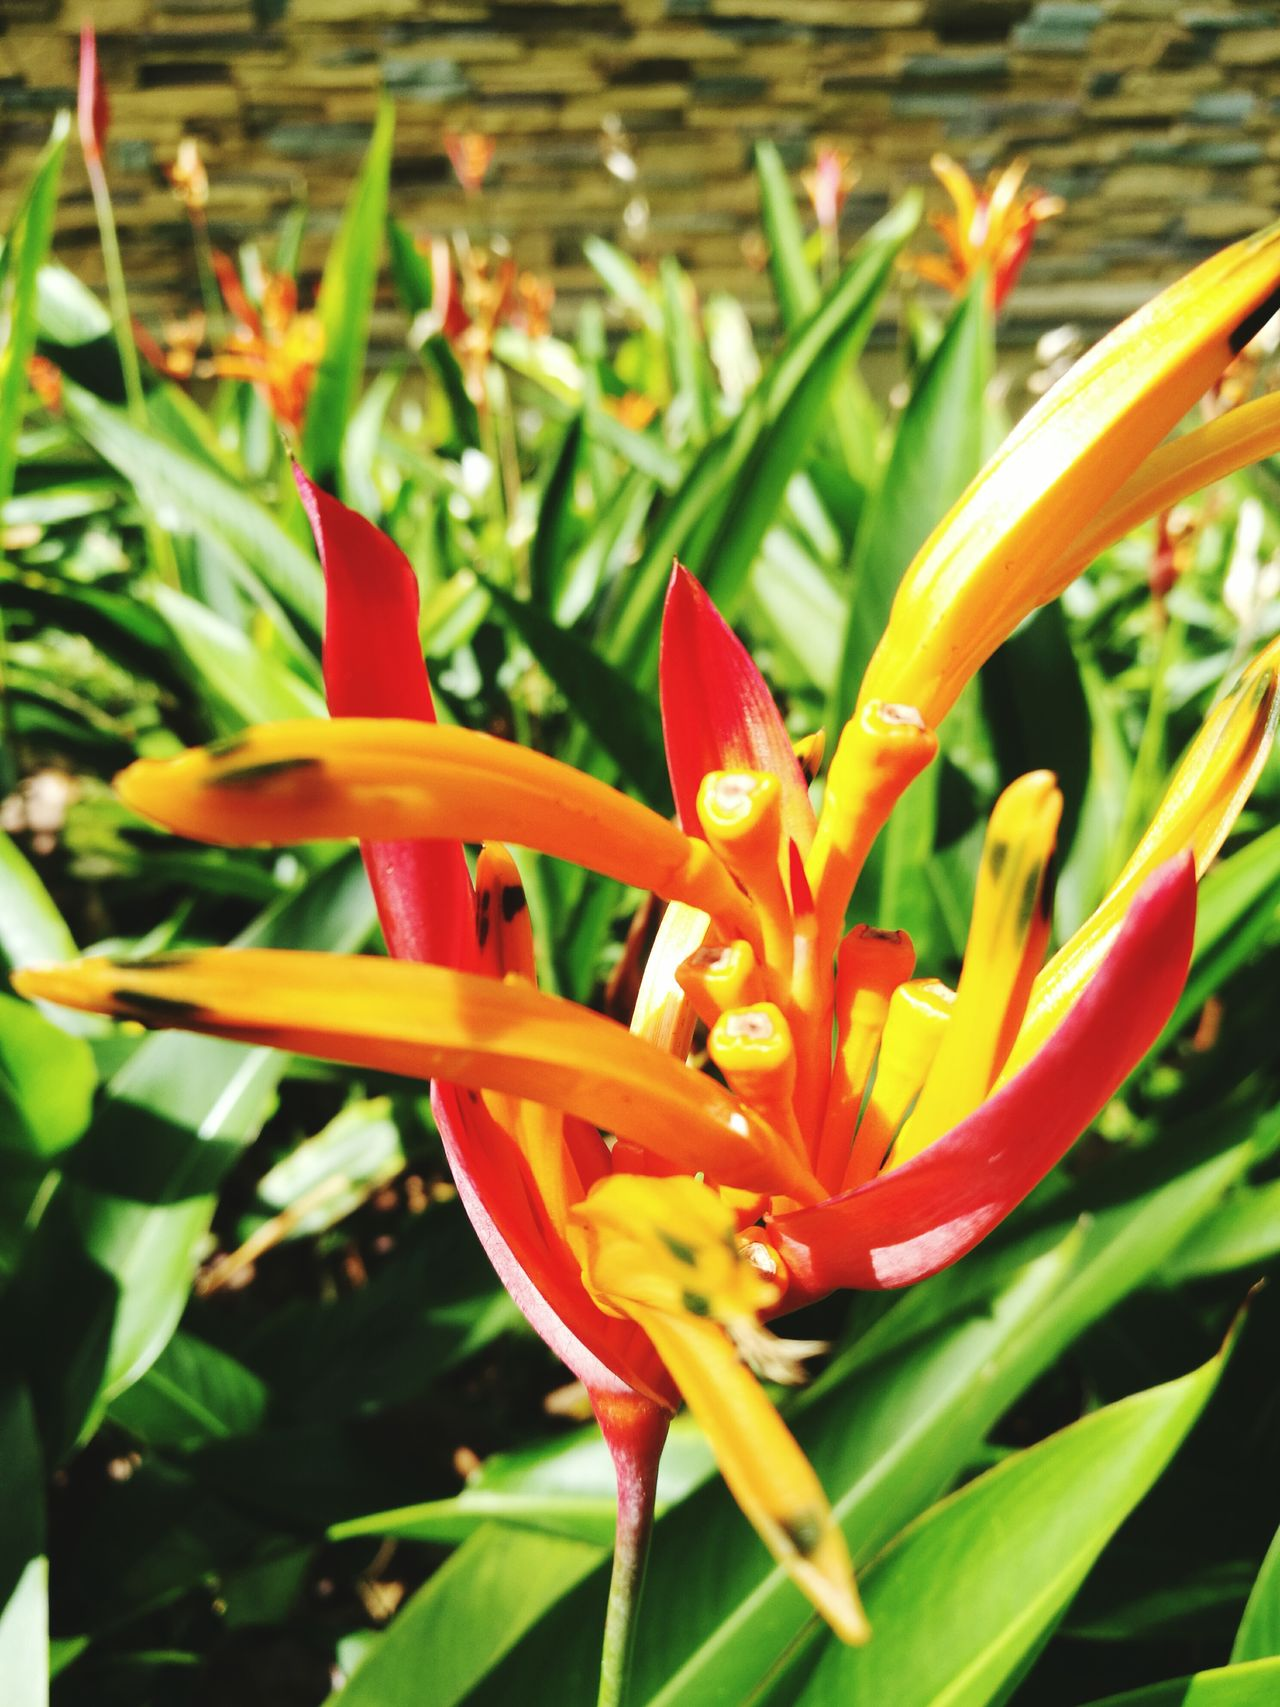 Flower Growth Plant Nature Beauty In Nature Freshness Flower Head Close-up Tropical Flower No People Day Outdoors Leica_camera Leicalens Huaweip9photos Nature Beauty In Nature